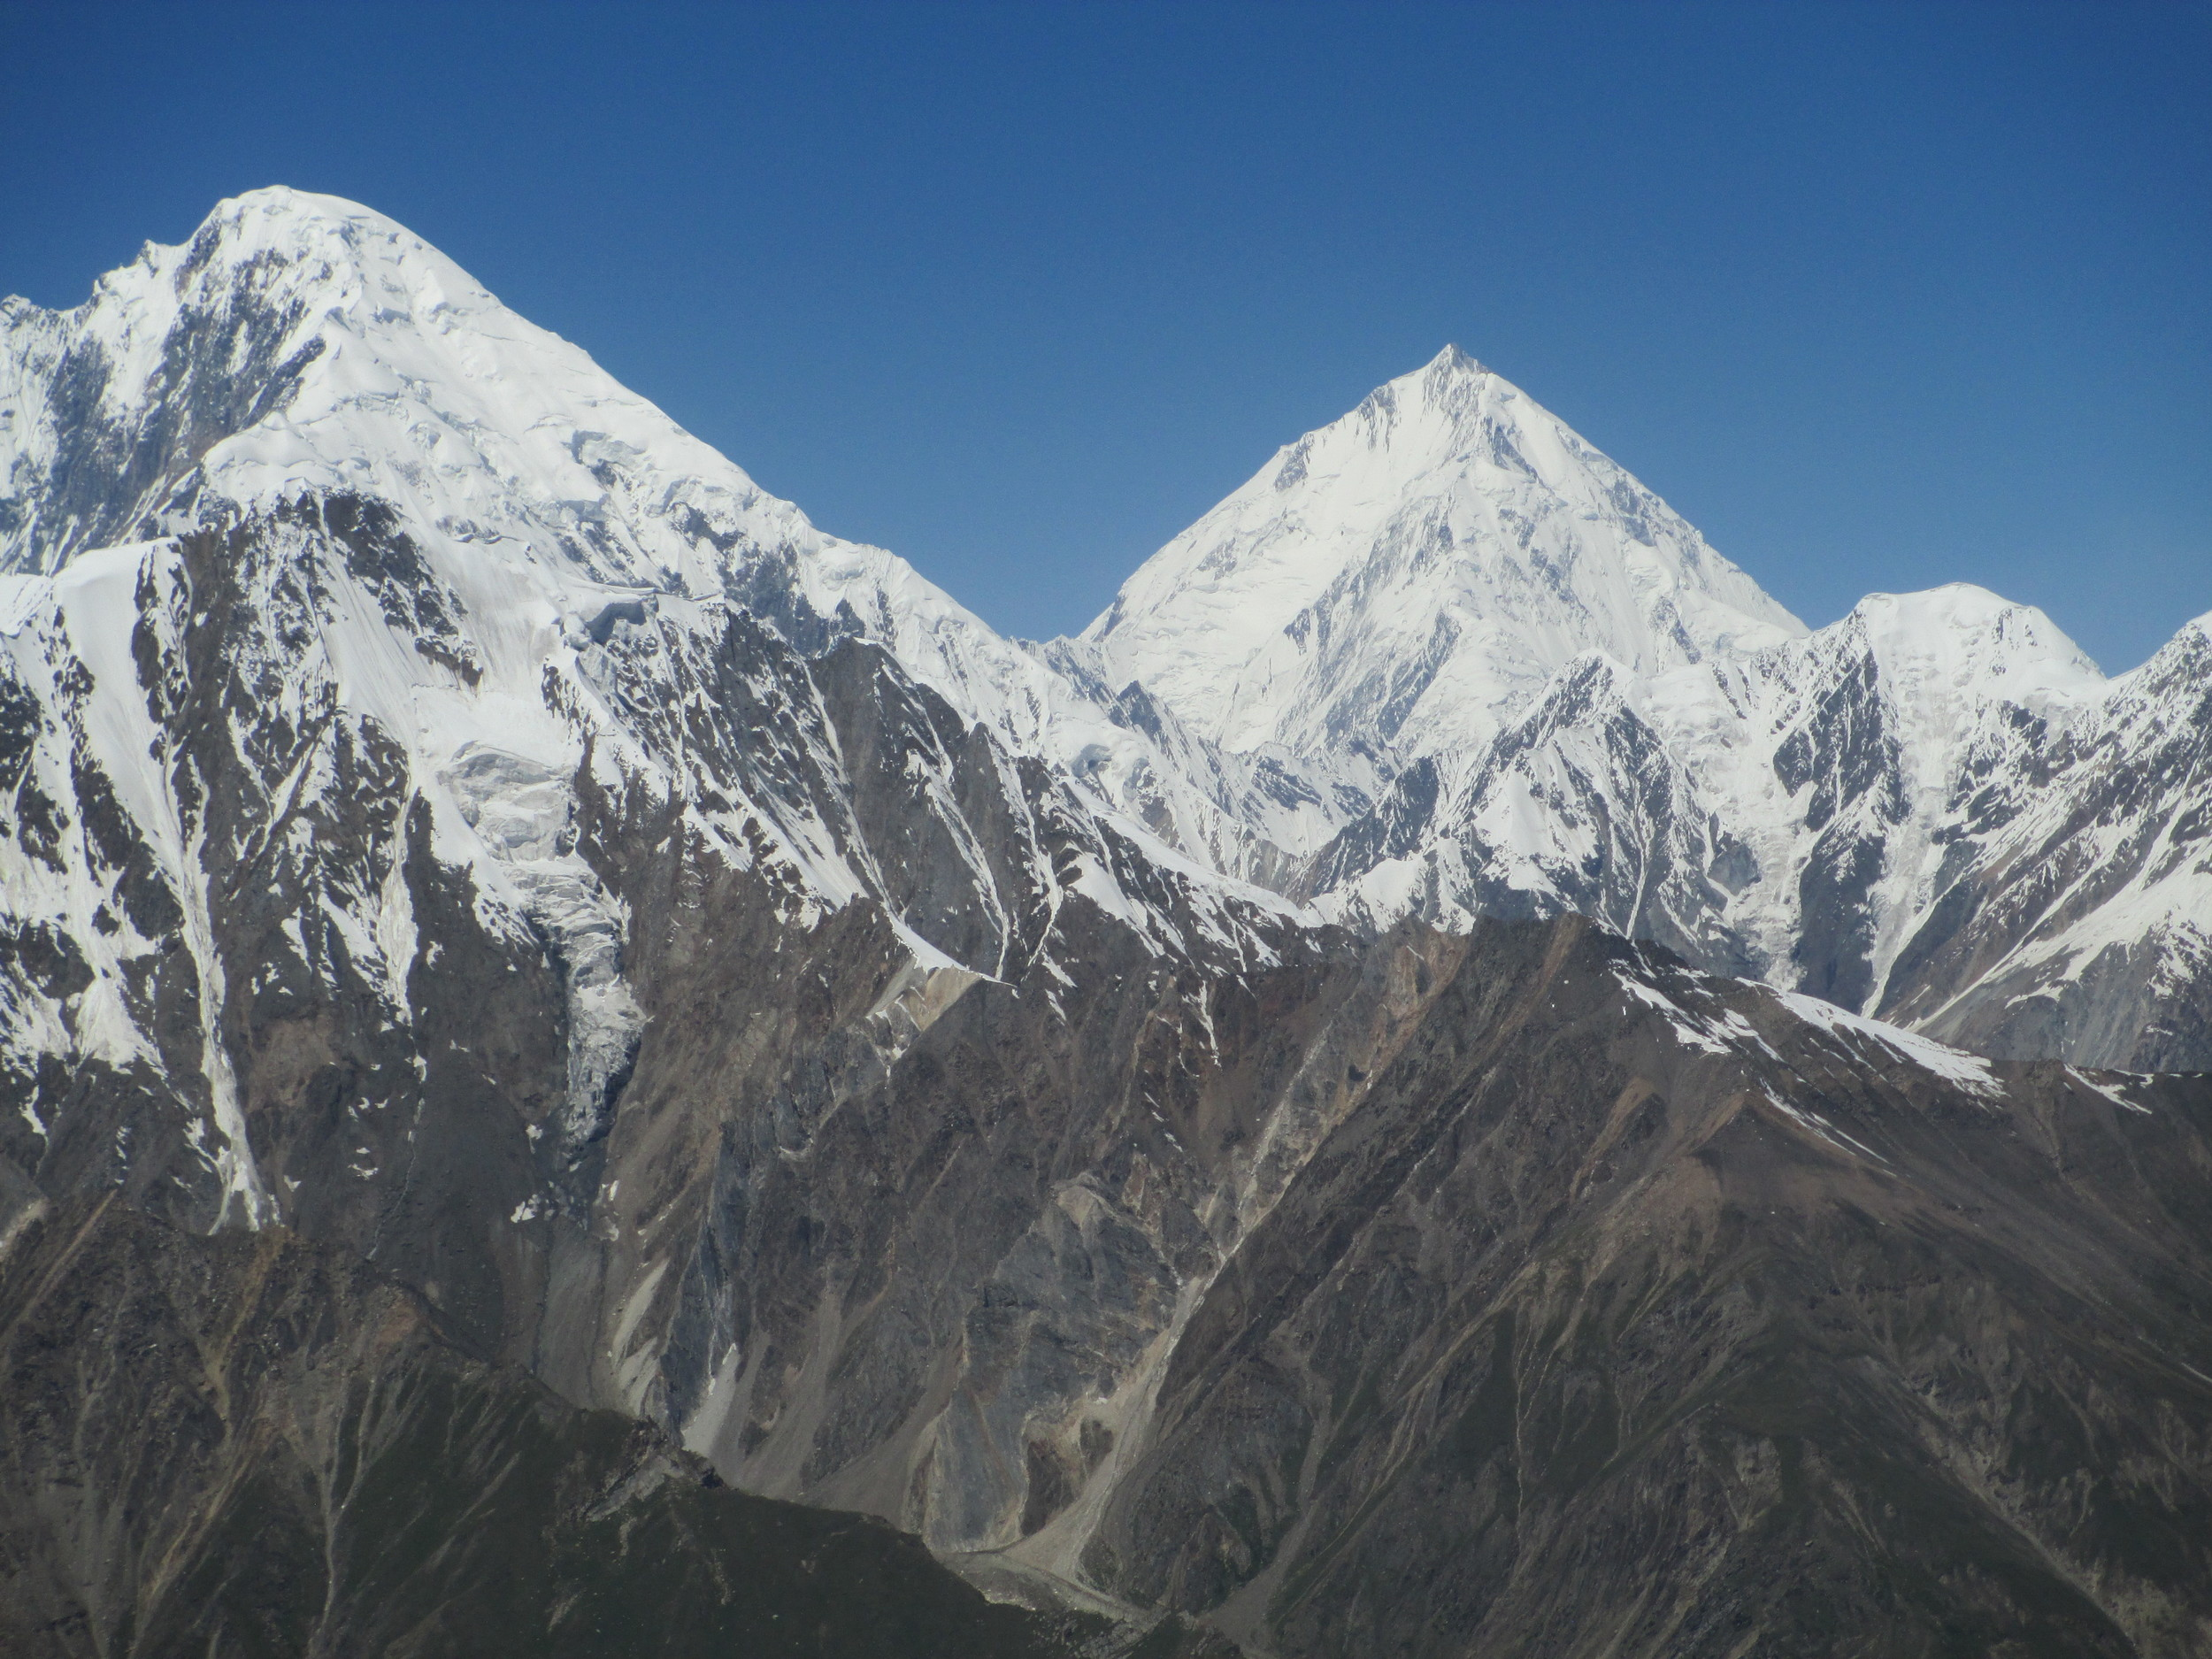 """Hopeless Hopeless"" Tilman muttered as he climbed the massive pyramid of Rakaposhi"